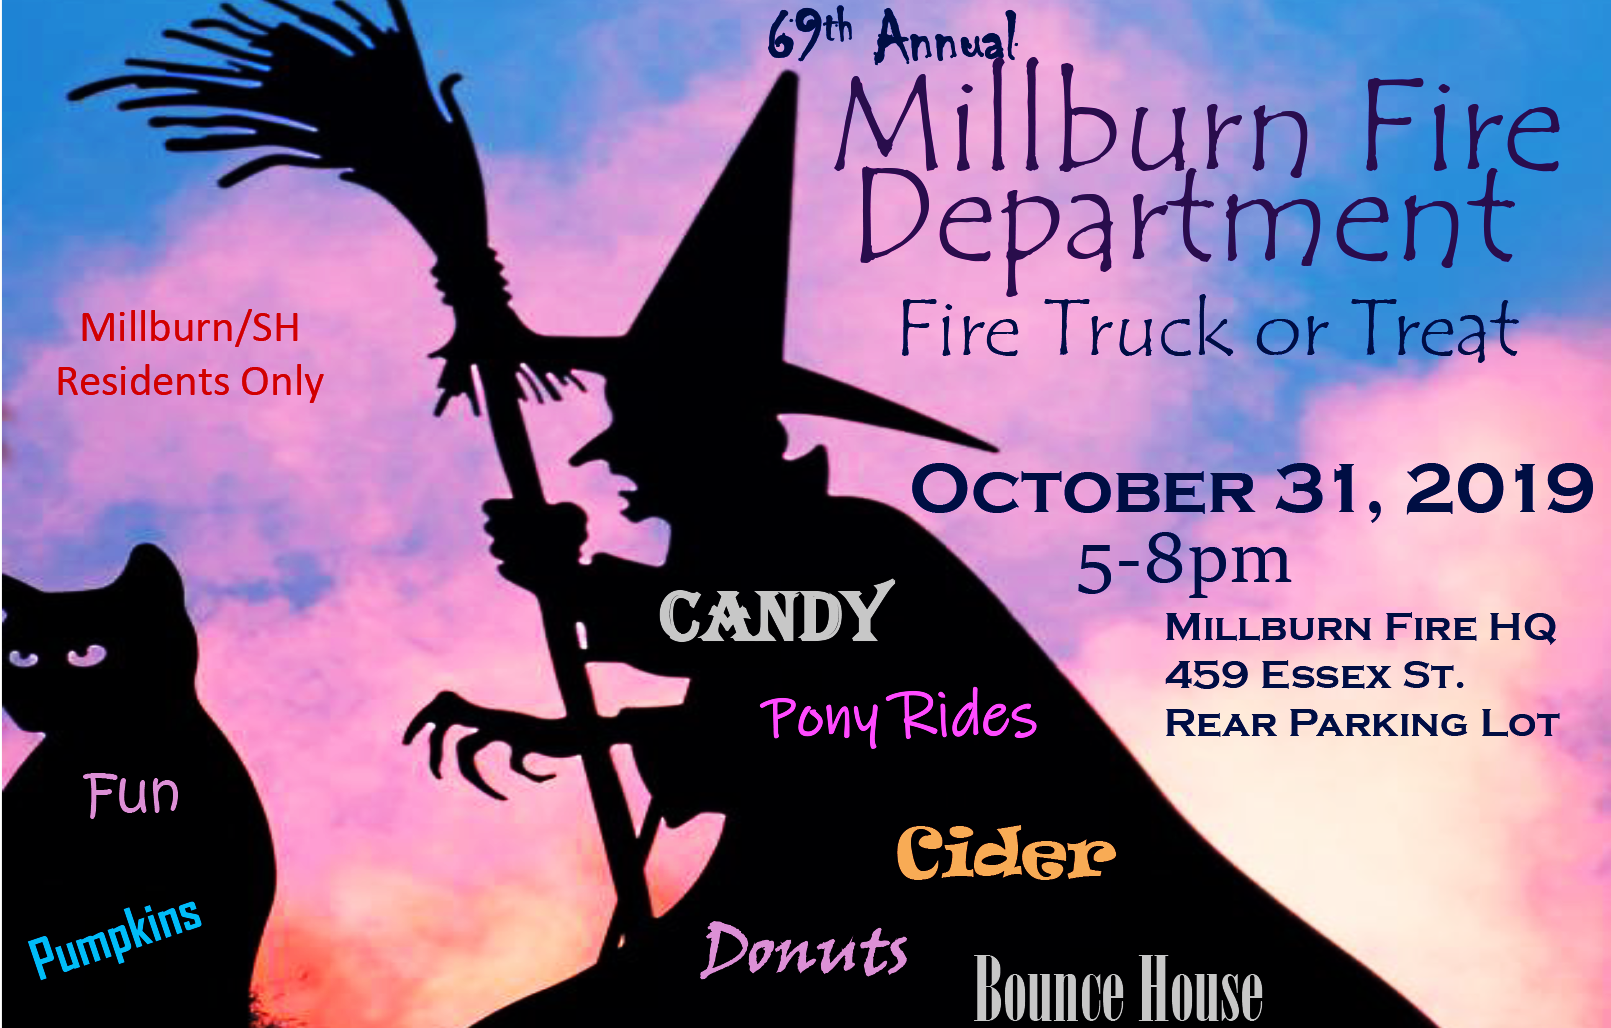 Truck or Treat Flyer with details about event